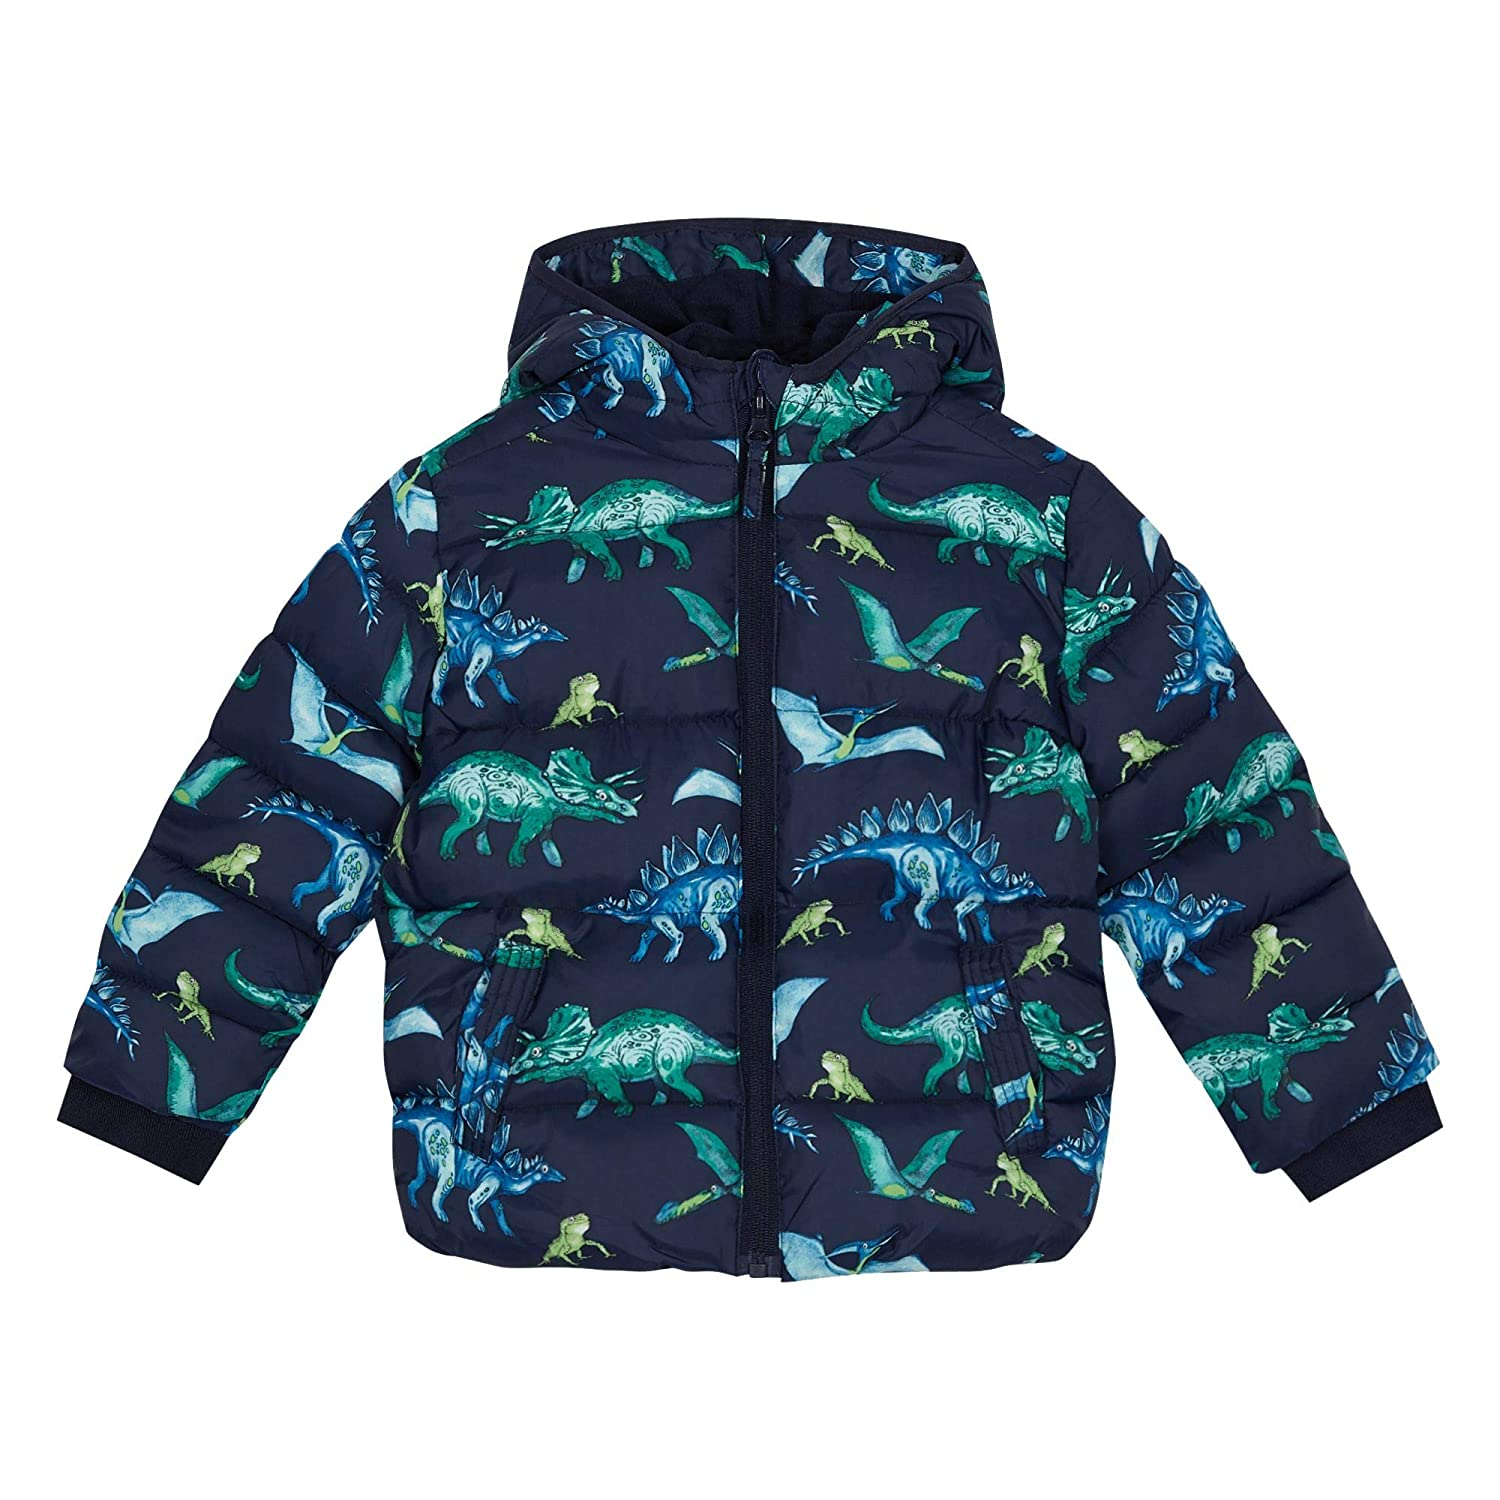 bluezoo Kids Boys' Navy Dinosaur Print Shower Resistant Jacket